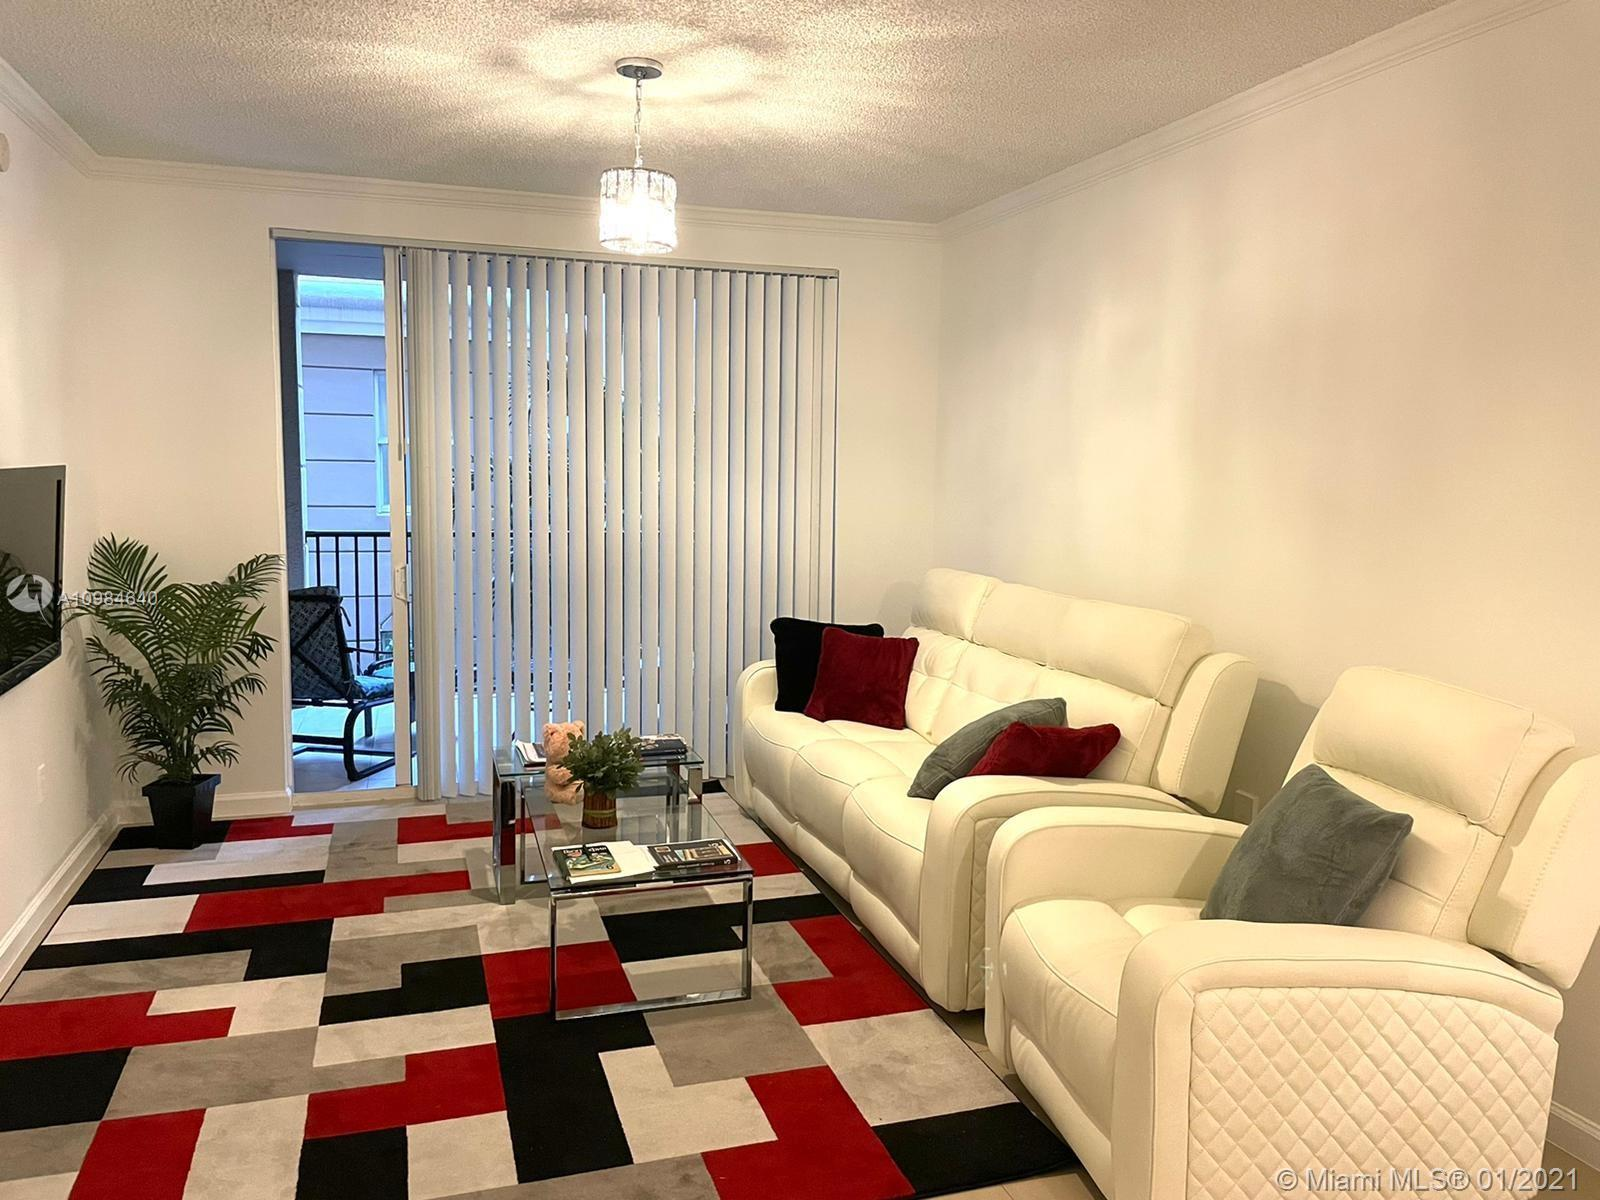 Amazing 2 bedroom 2 bath apartment with split plan located in main building on the 2nd floor. Unit i